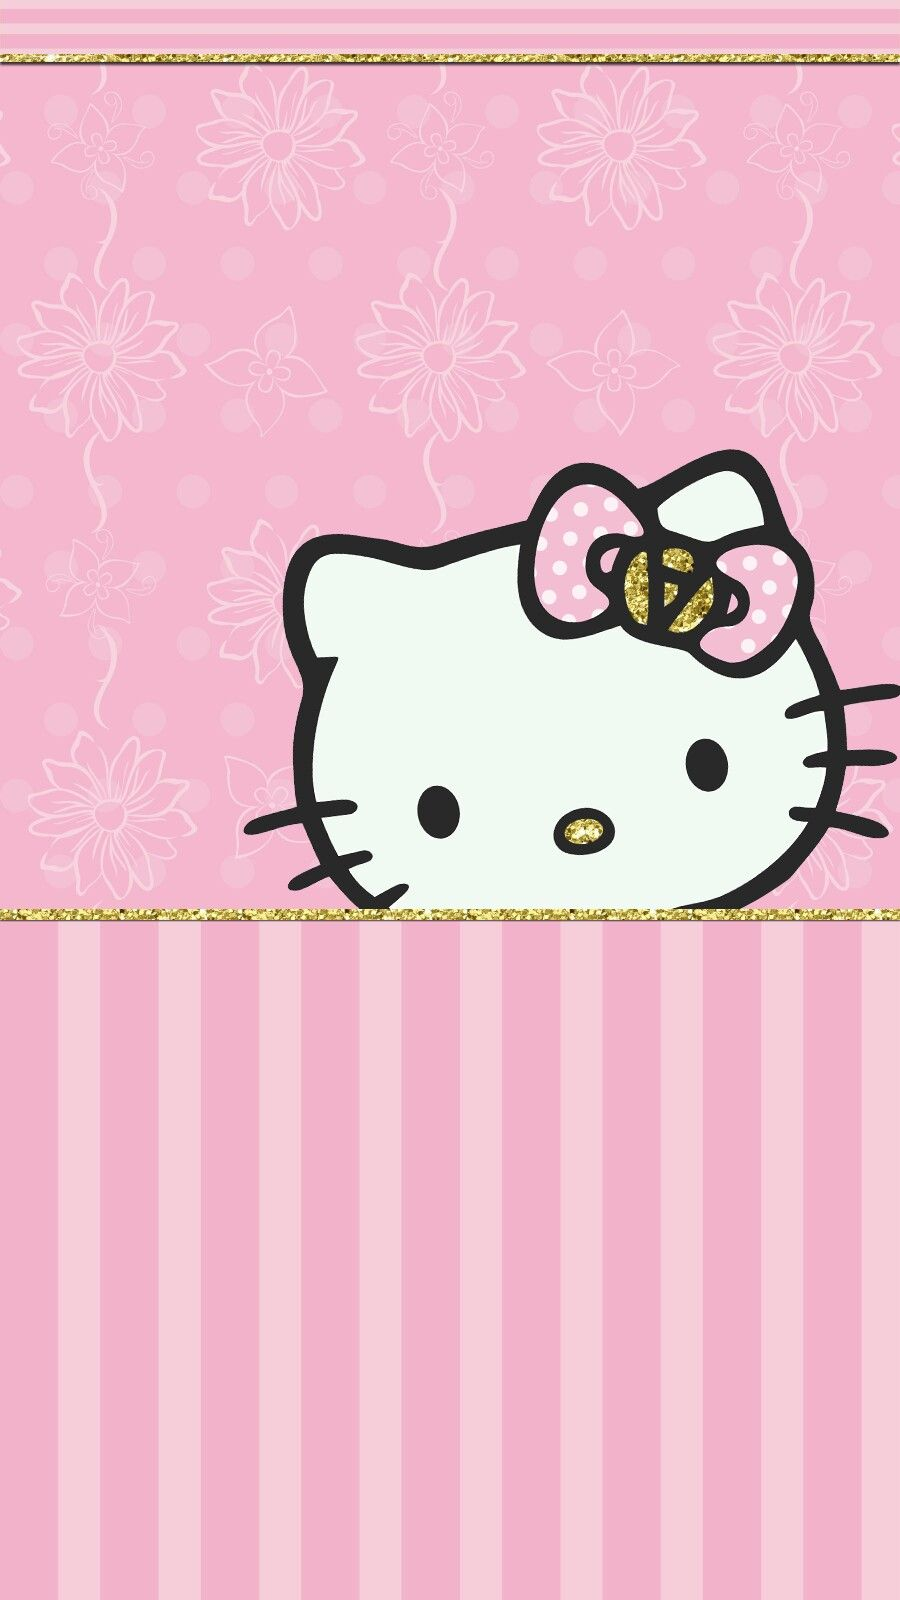 Hello Kitty Princess Pink Wallpaper Android Iphone Android